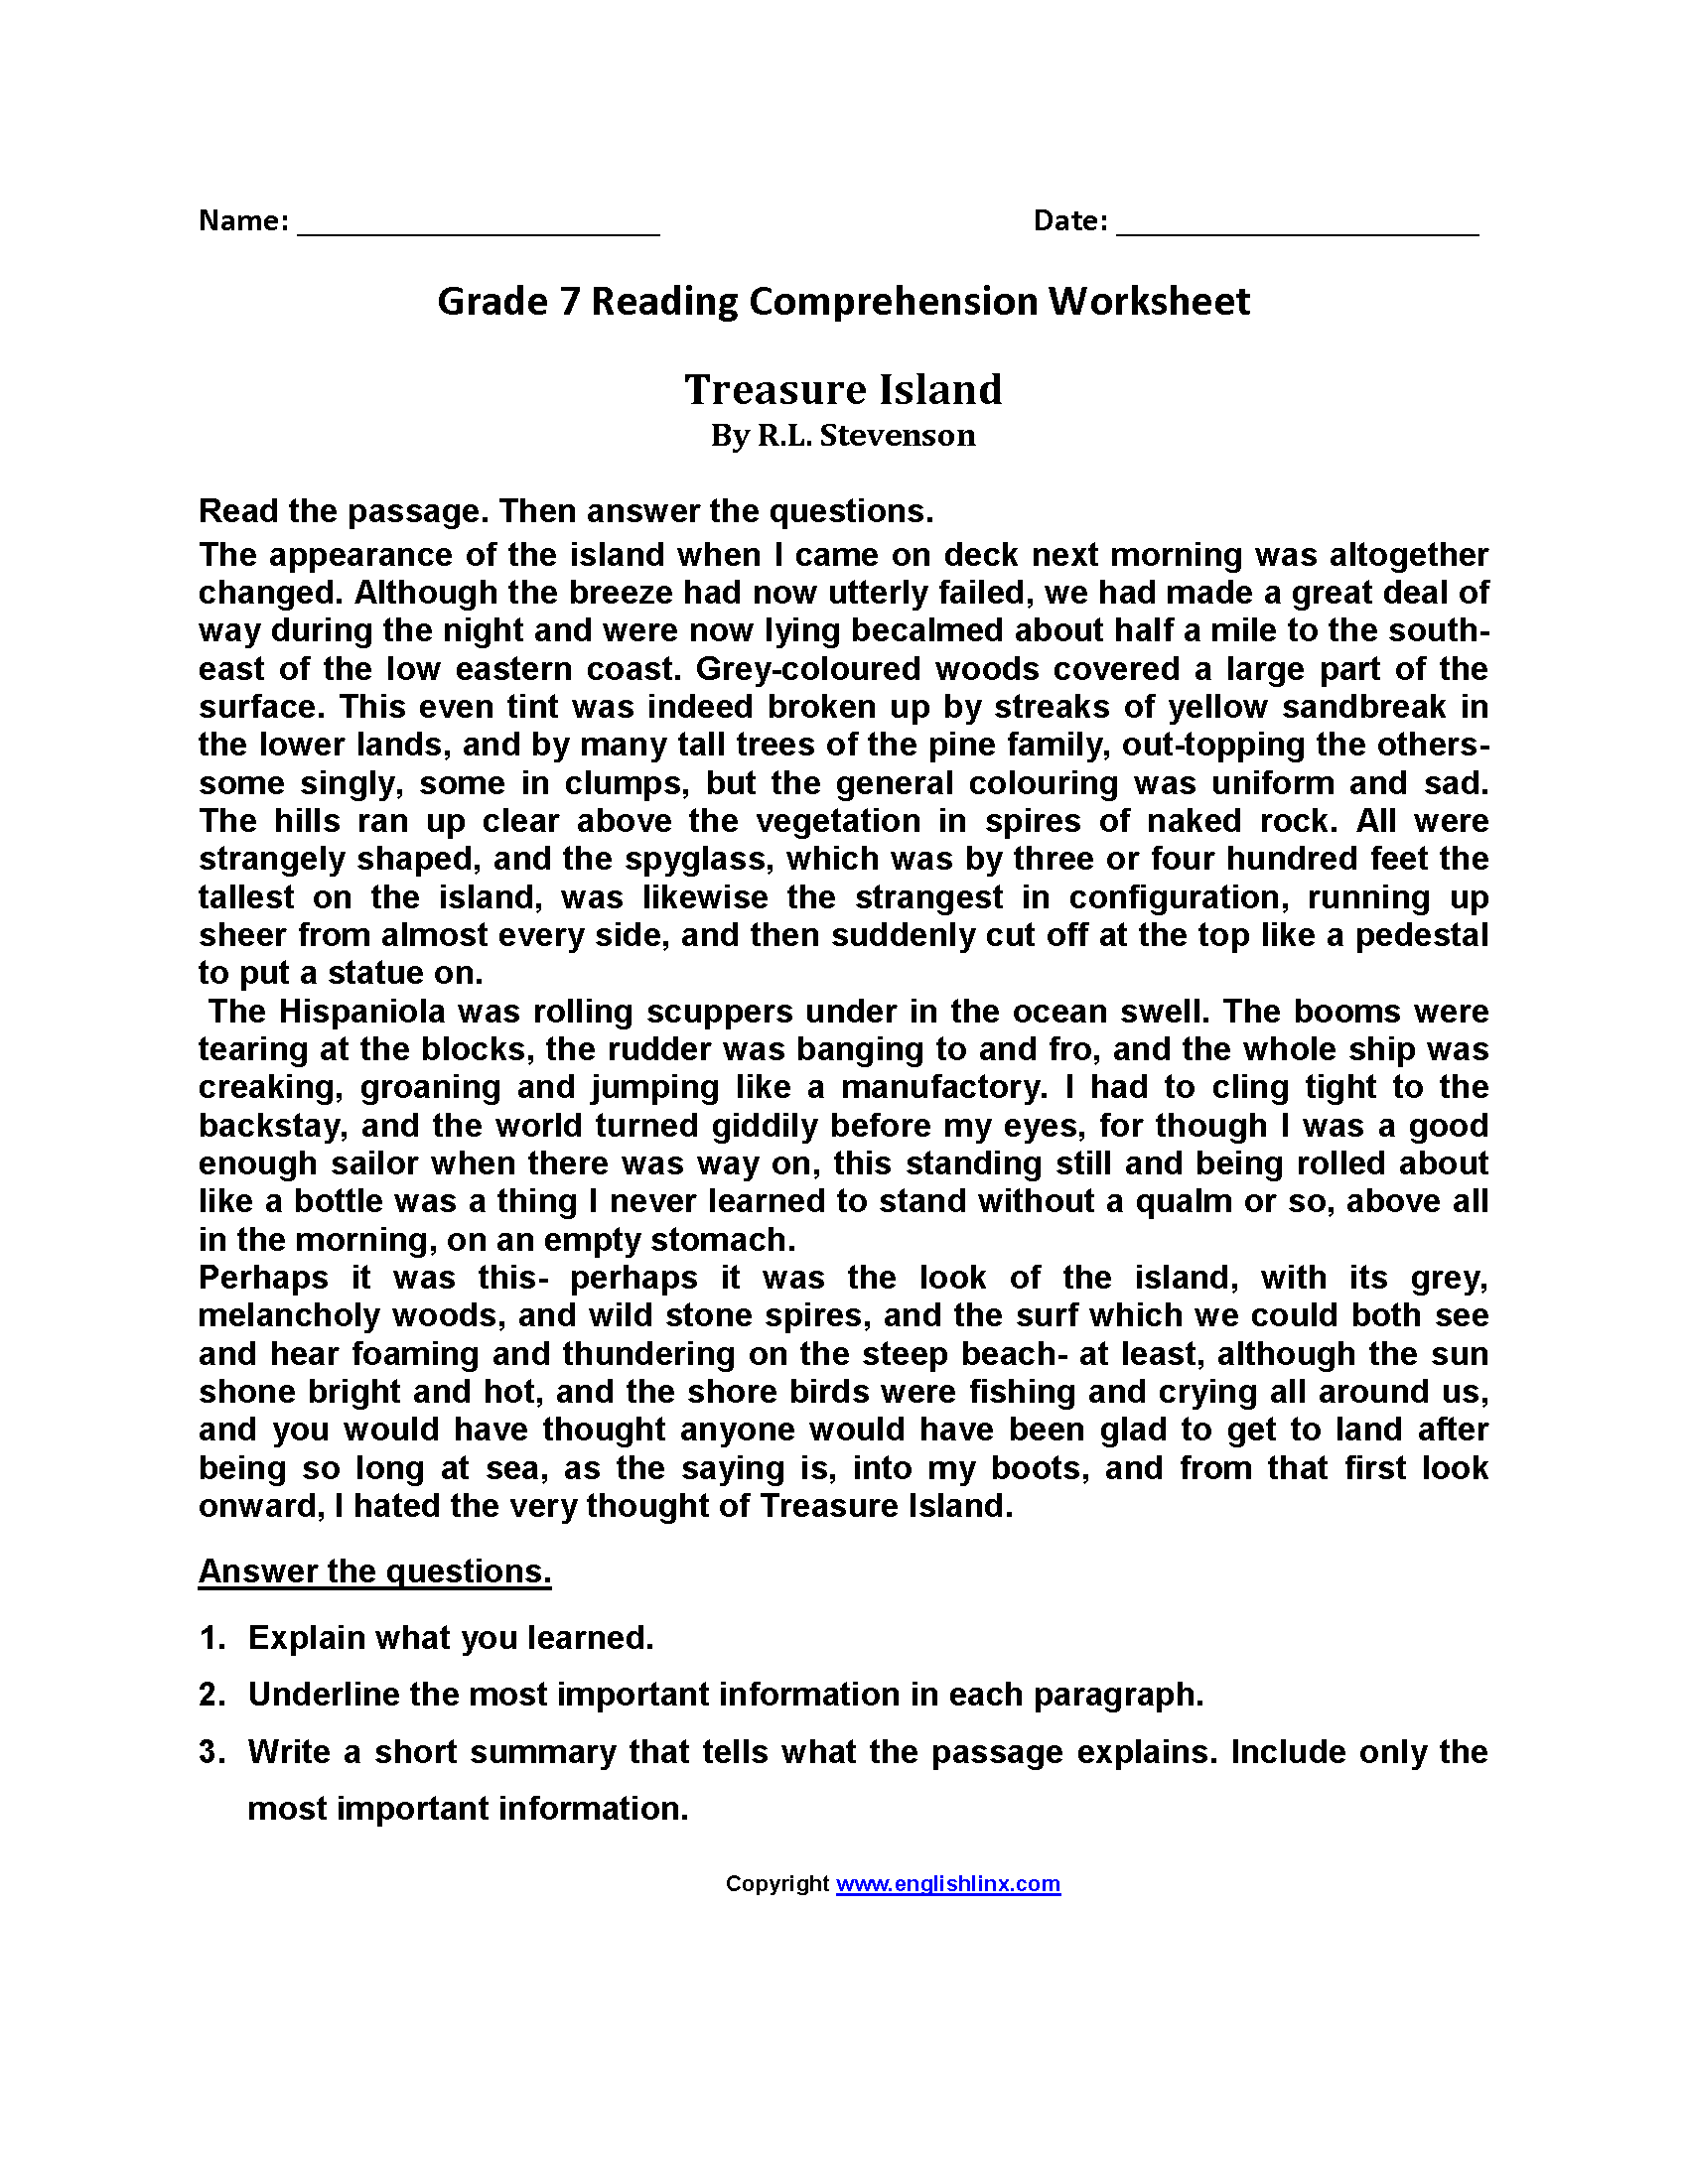 Treasure Islandseventh Grade Reading Worksheets Grade 7